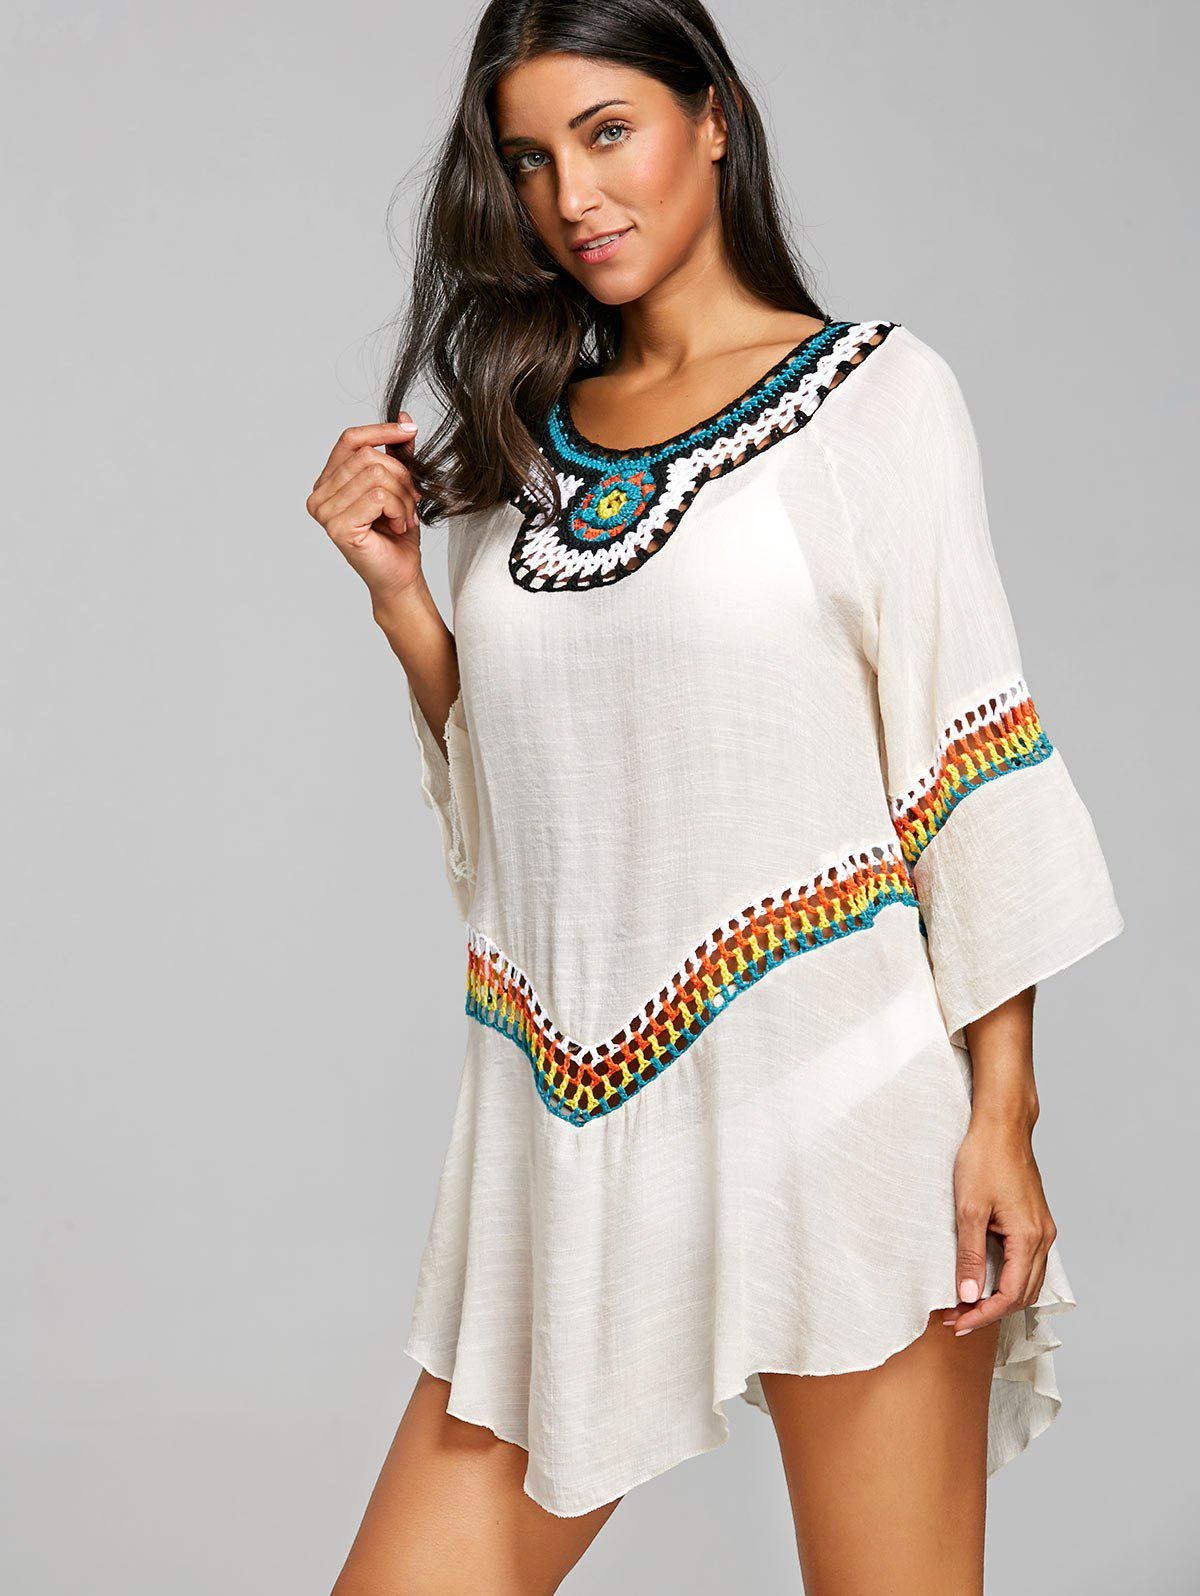 Crochet Panel Asymmetrical Tunic Cover Up Top - OFF WHITE ONE SIZE